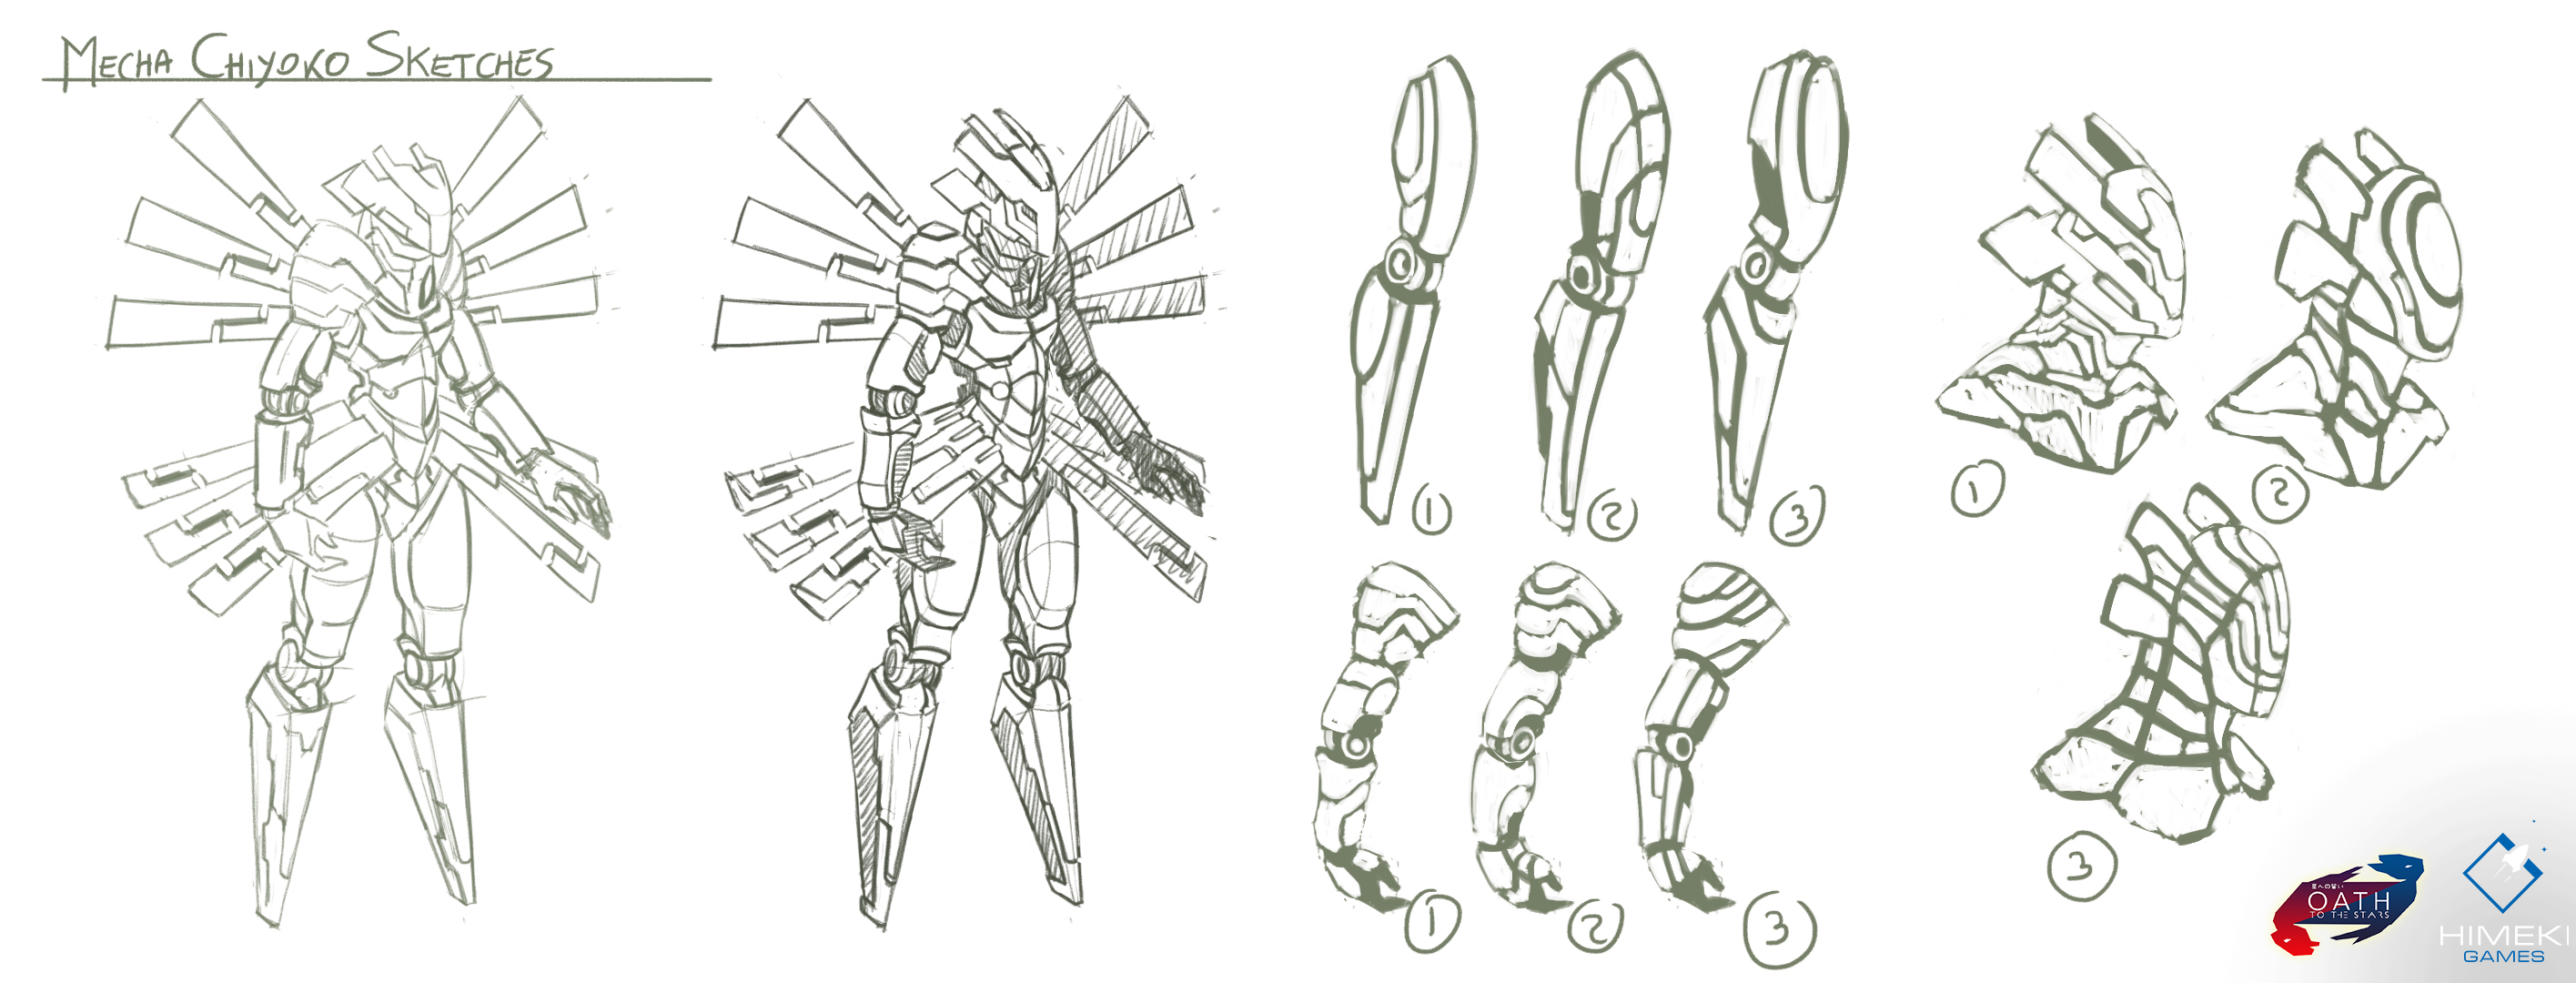 Mecha_Chiyoko_Sketches